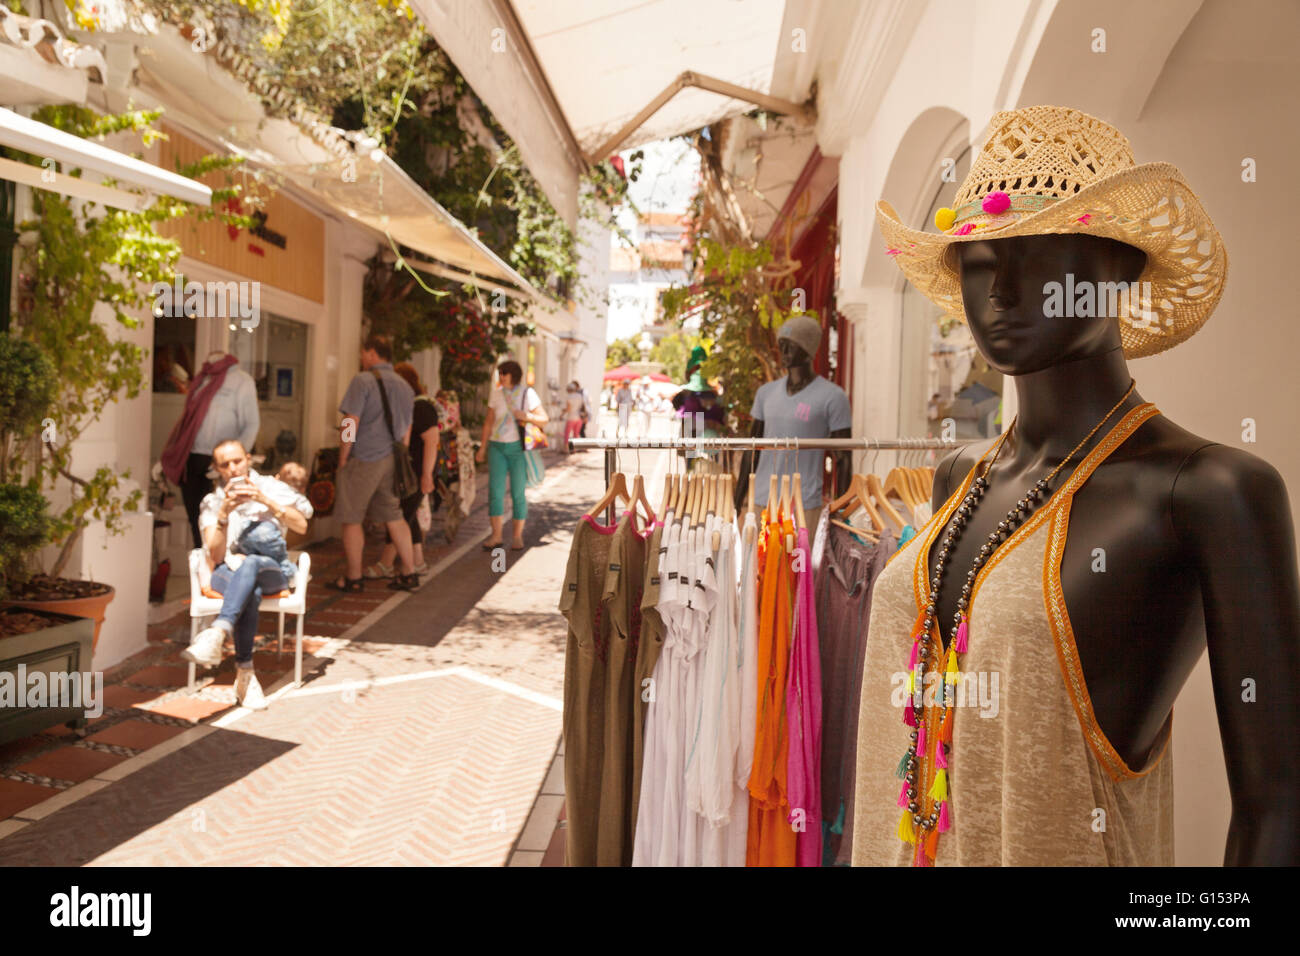 People shopping in the old town, Marbella, Costa del Sol, Andalusia Spain Europe - Stock Image